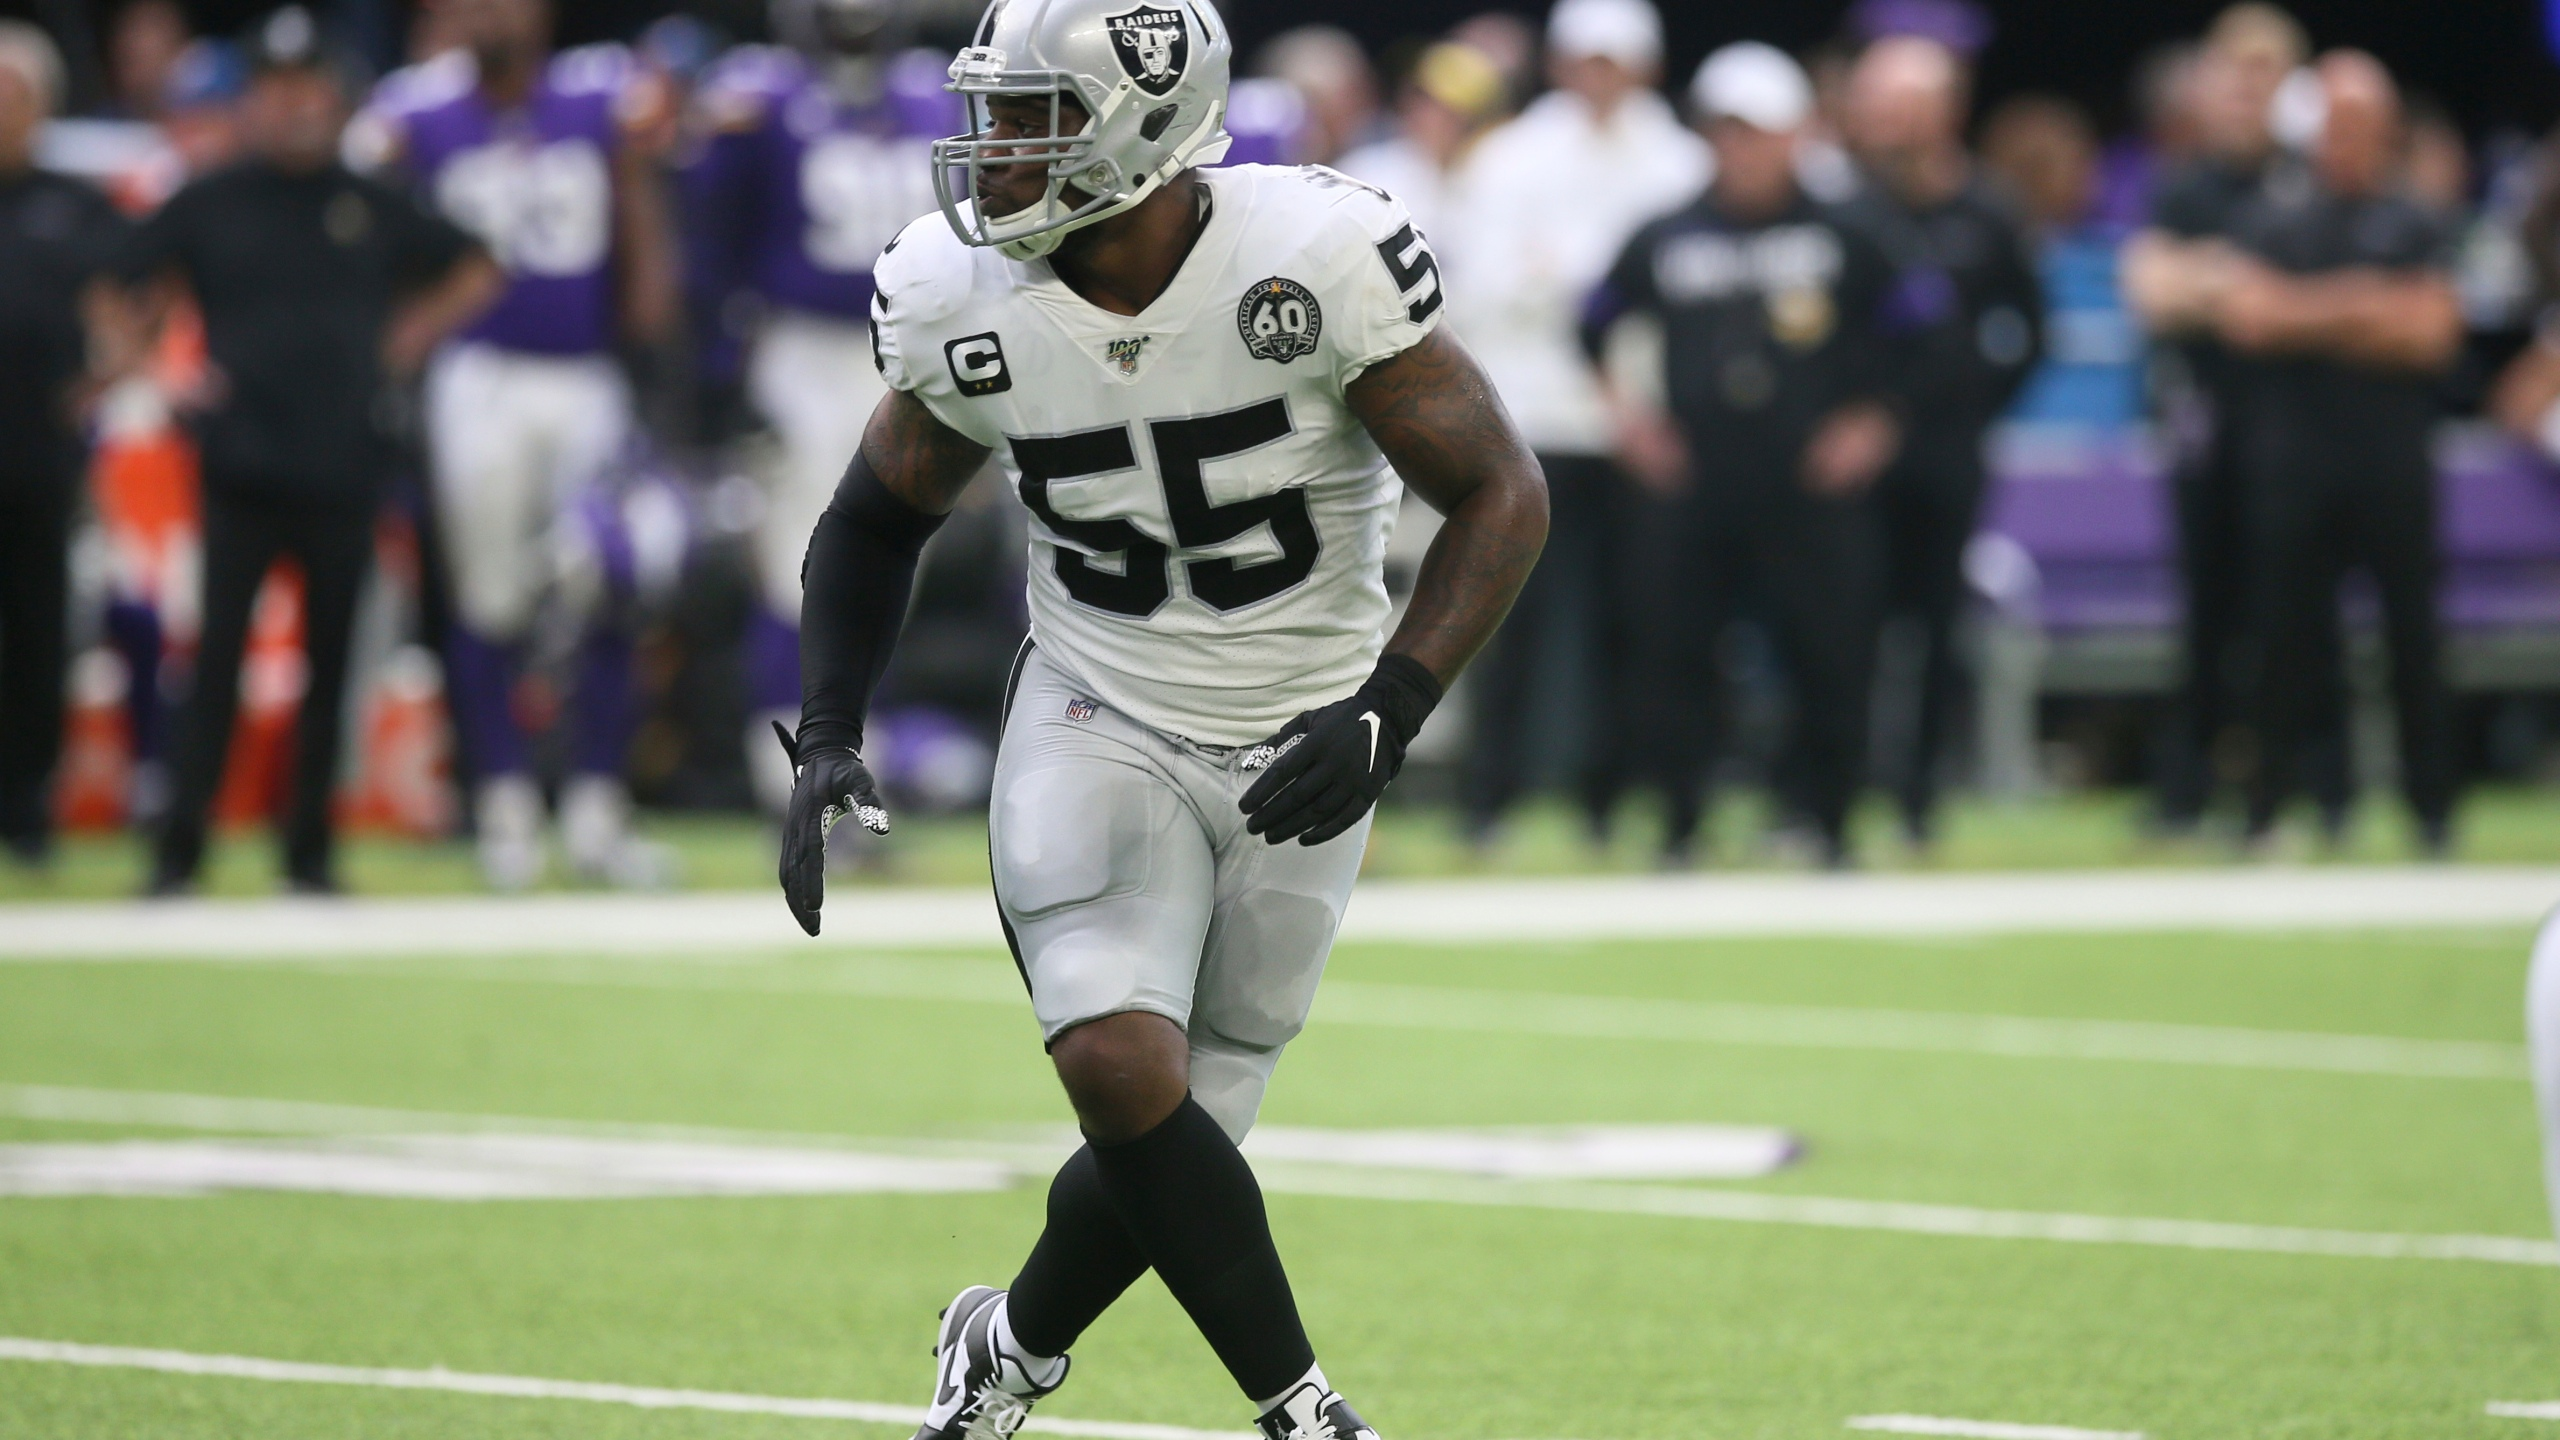 Nfl Suspends Raiders Vontaze Burfict For Rest Of Season